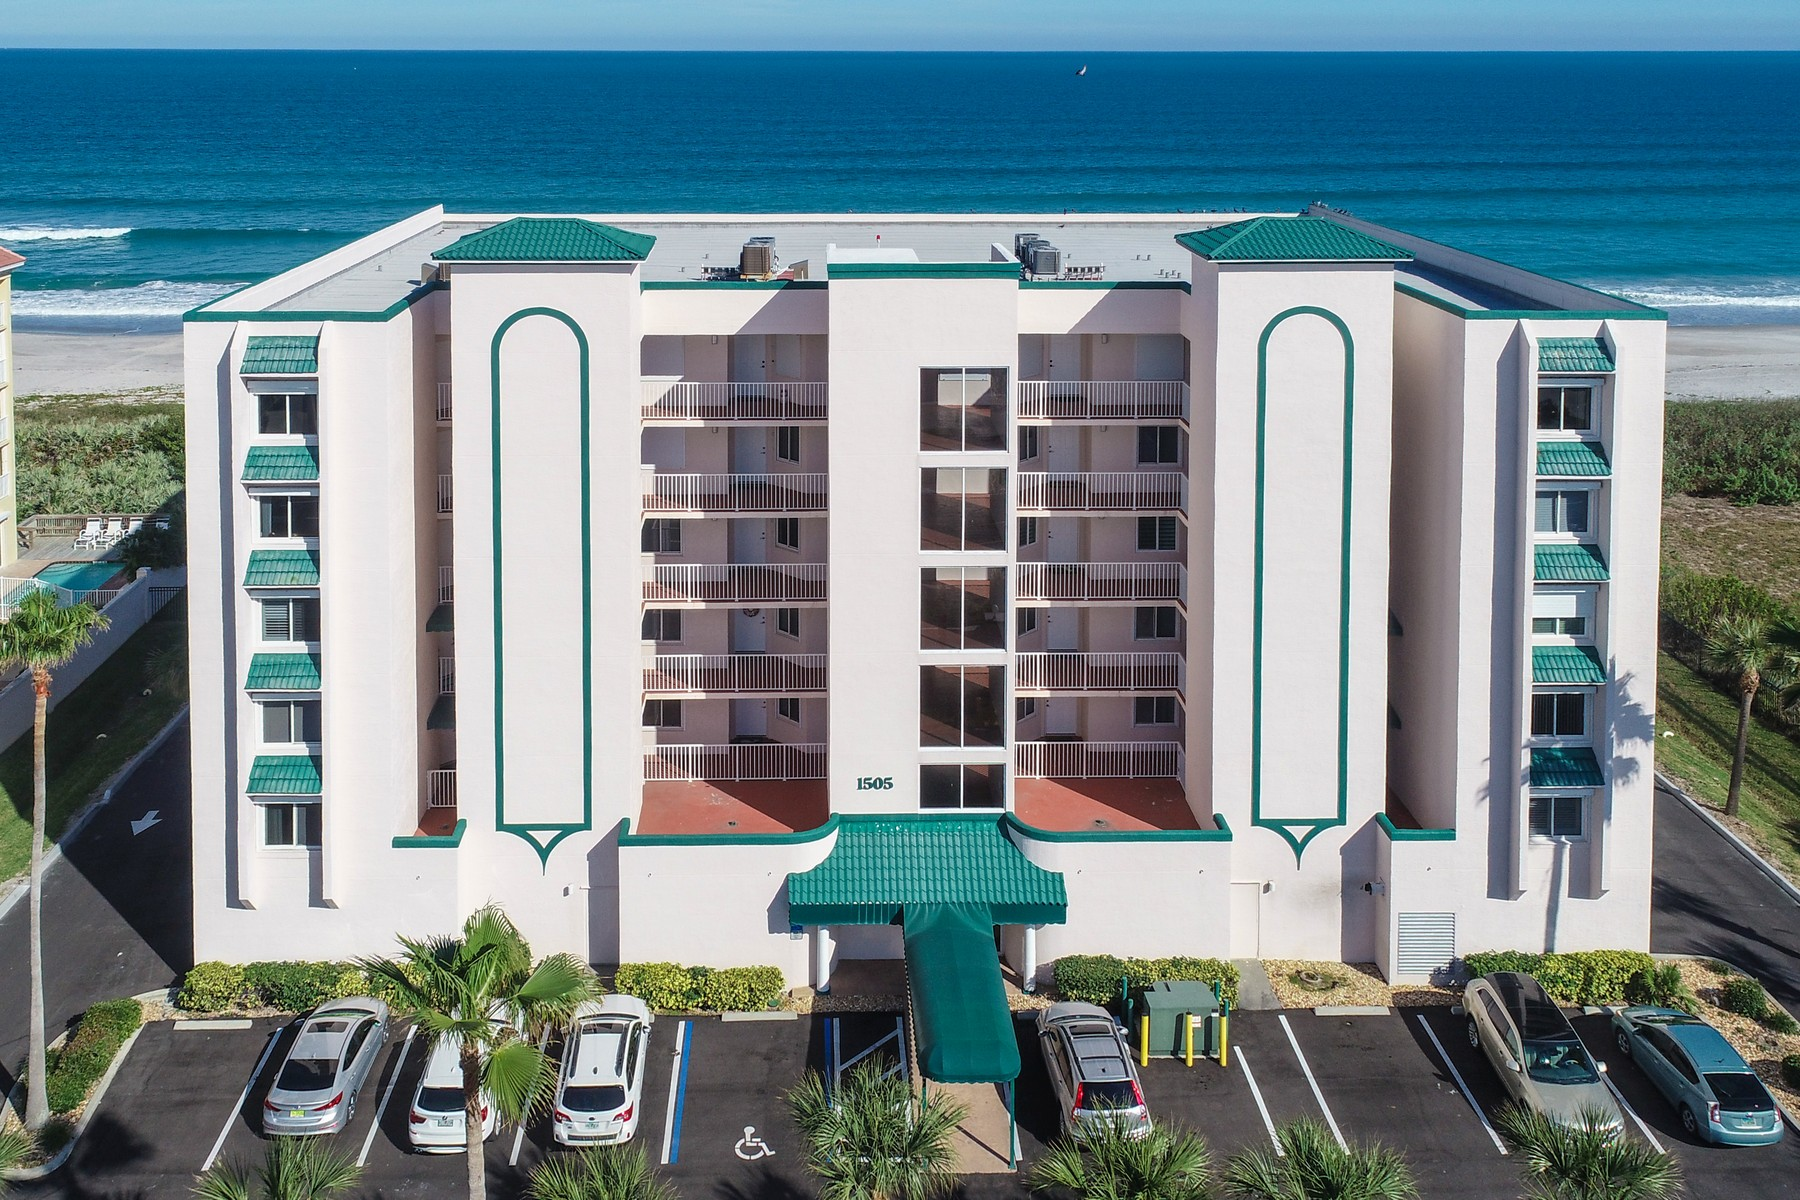 Royal Palm Condominium 1505 N Highway A1A Unit 402 Indialantic, Florida 32903 Estados Unidos